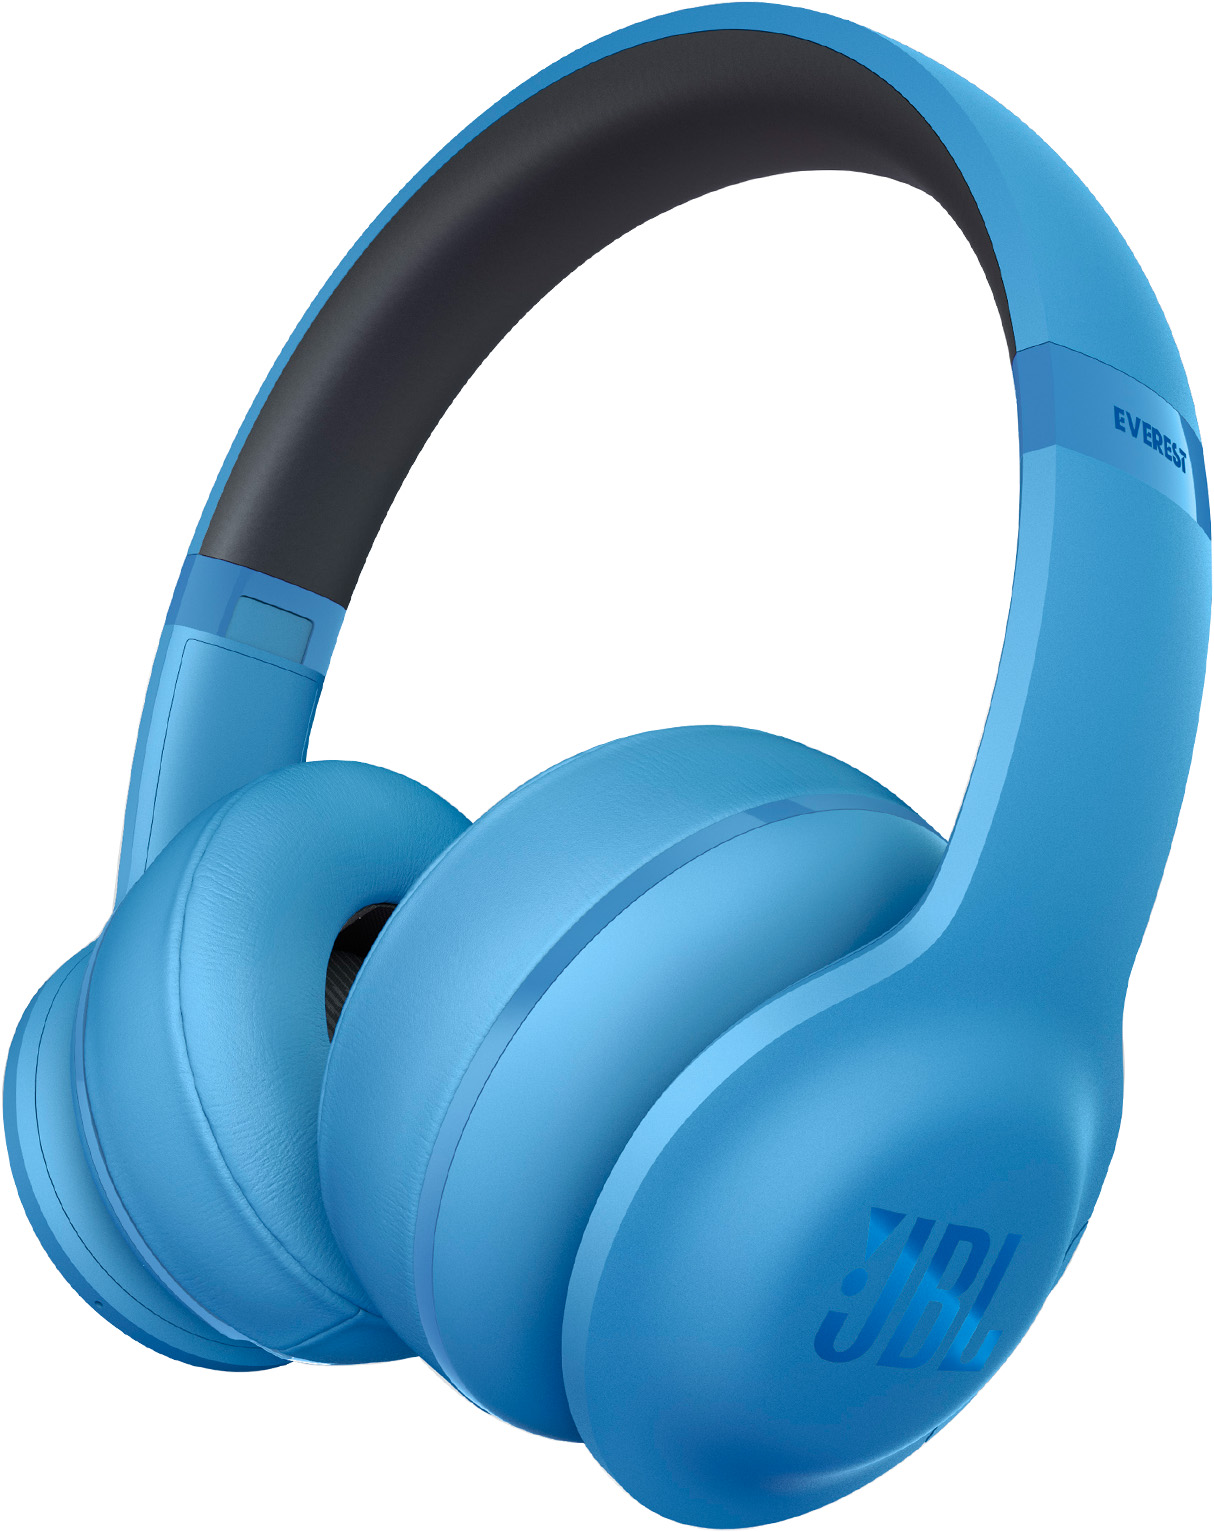 JBL Everest 300 On-Ear Wireless Headphones (Carolina Blue)